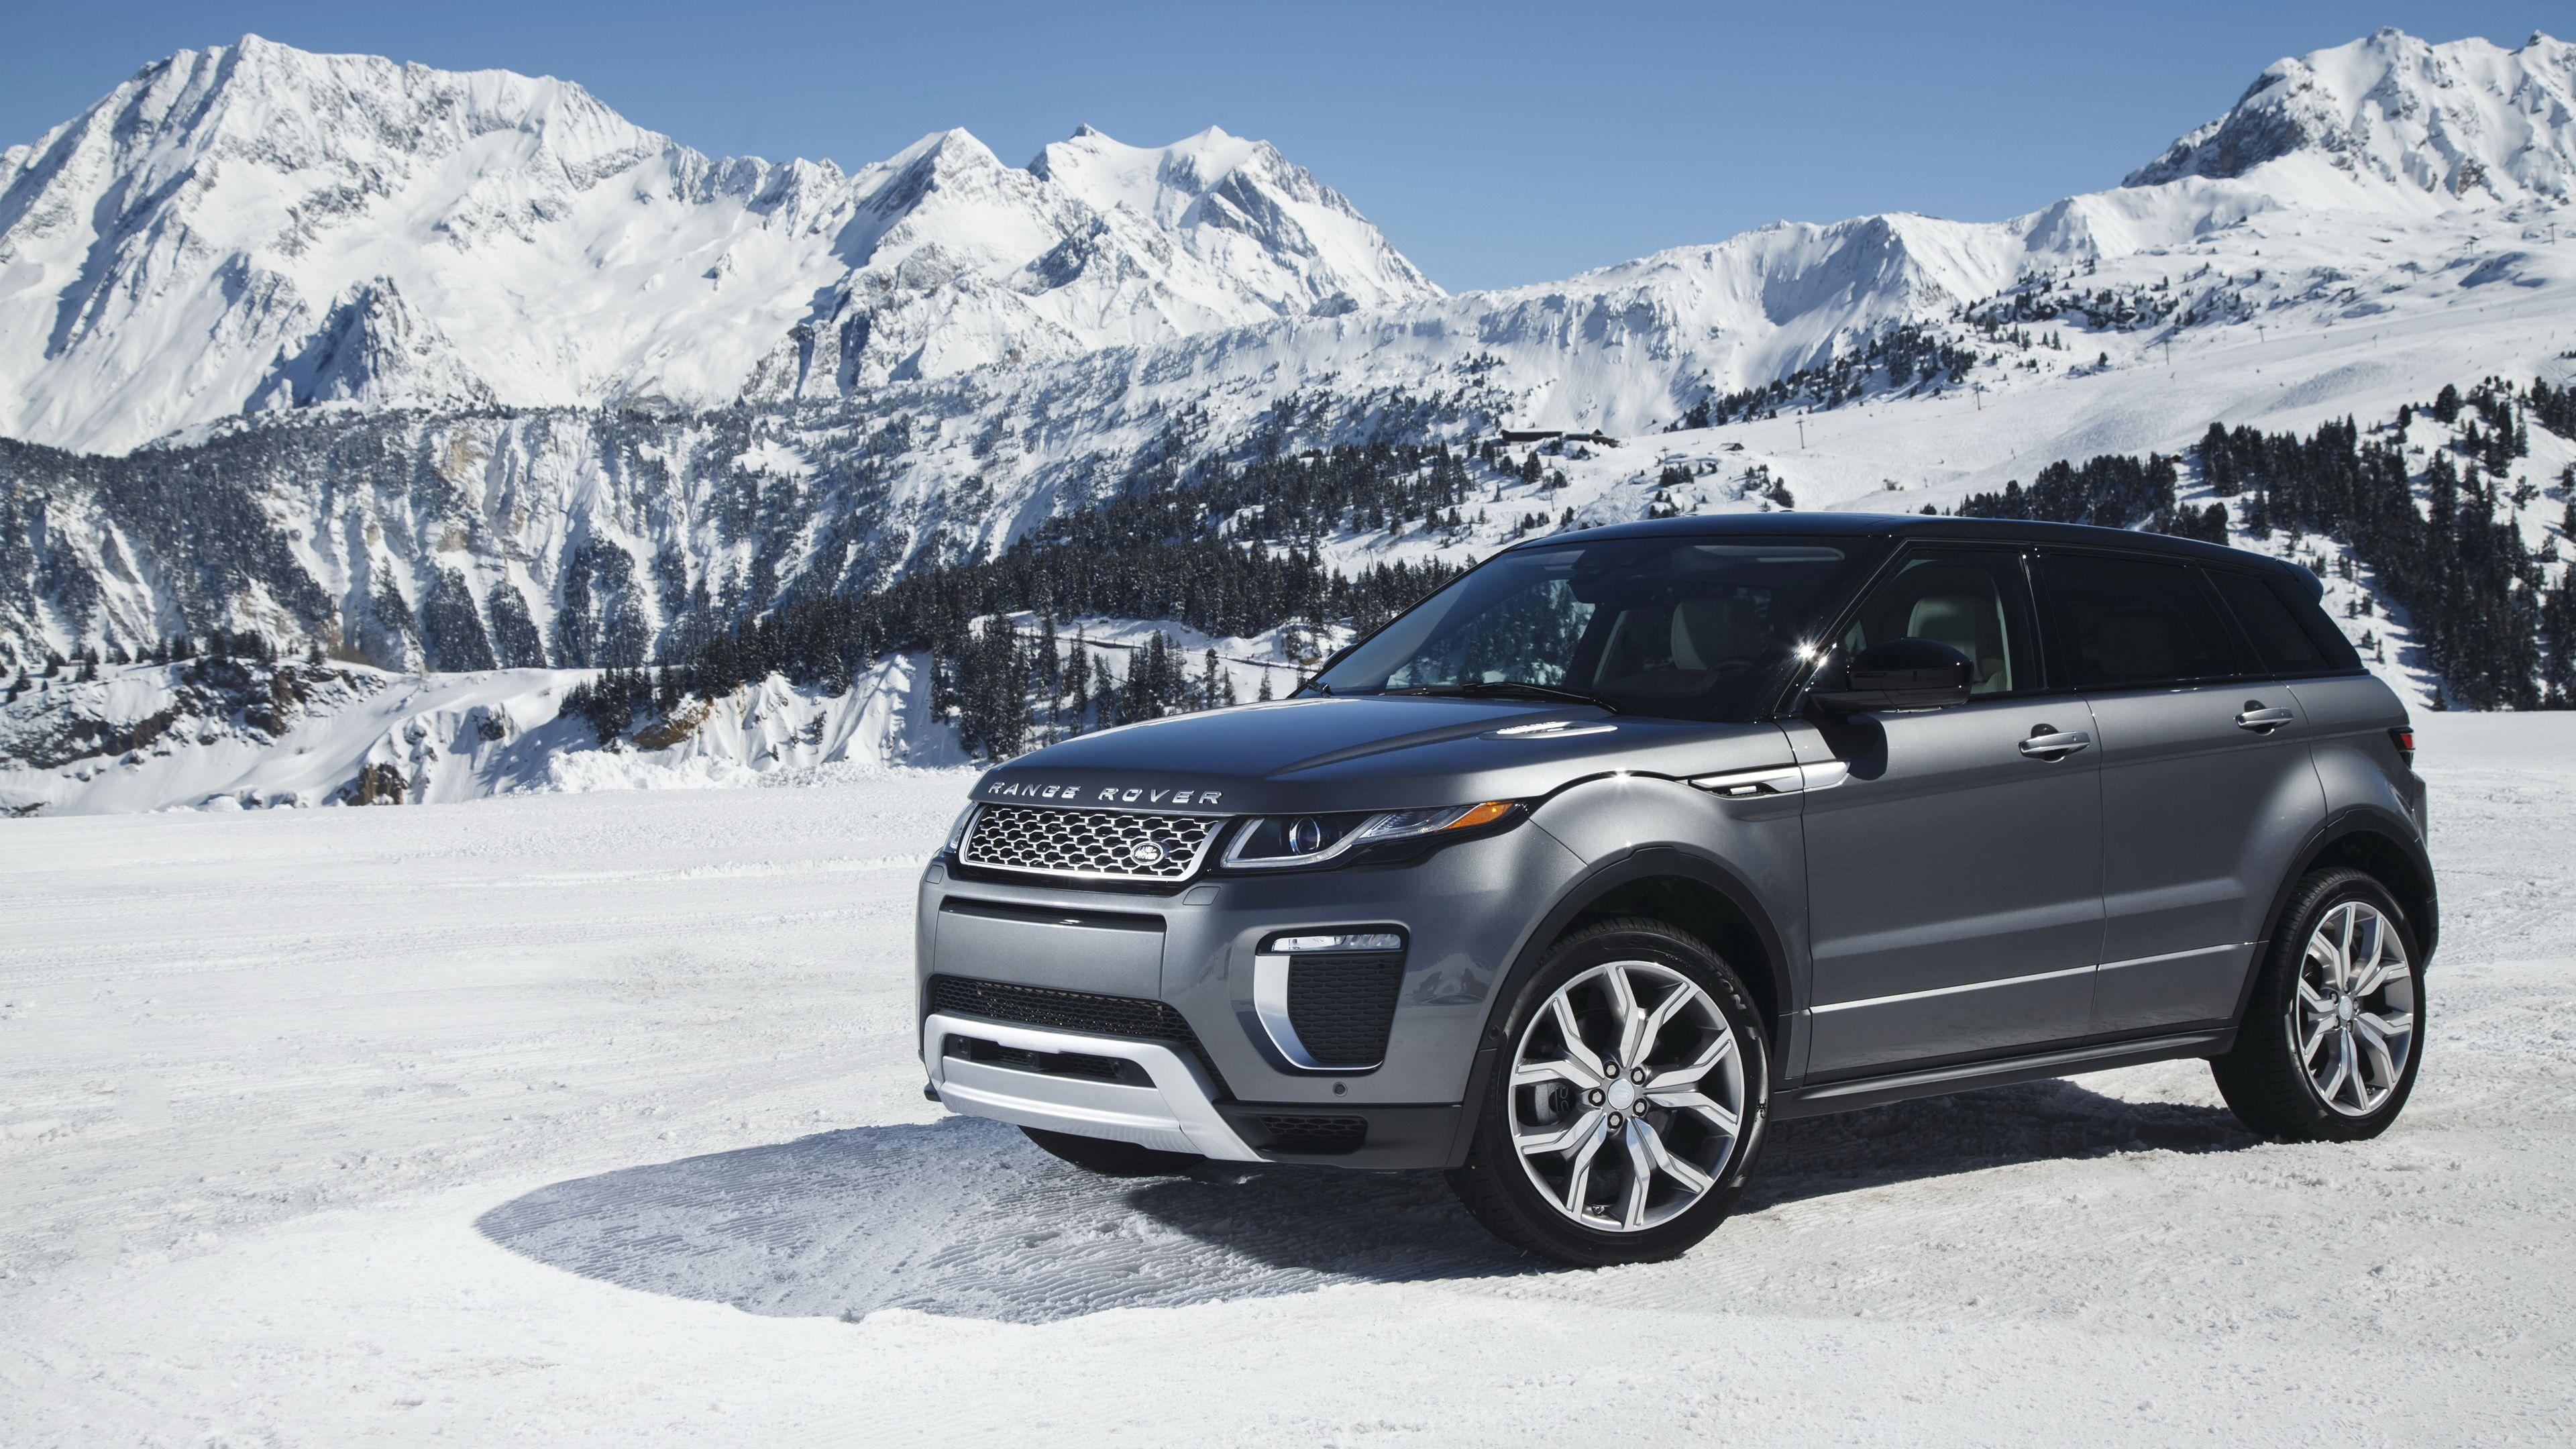 Land Rover Car Wallpapers,Pictures | Land Rover Widescreen & HD ...